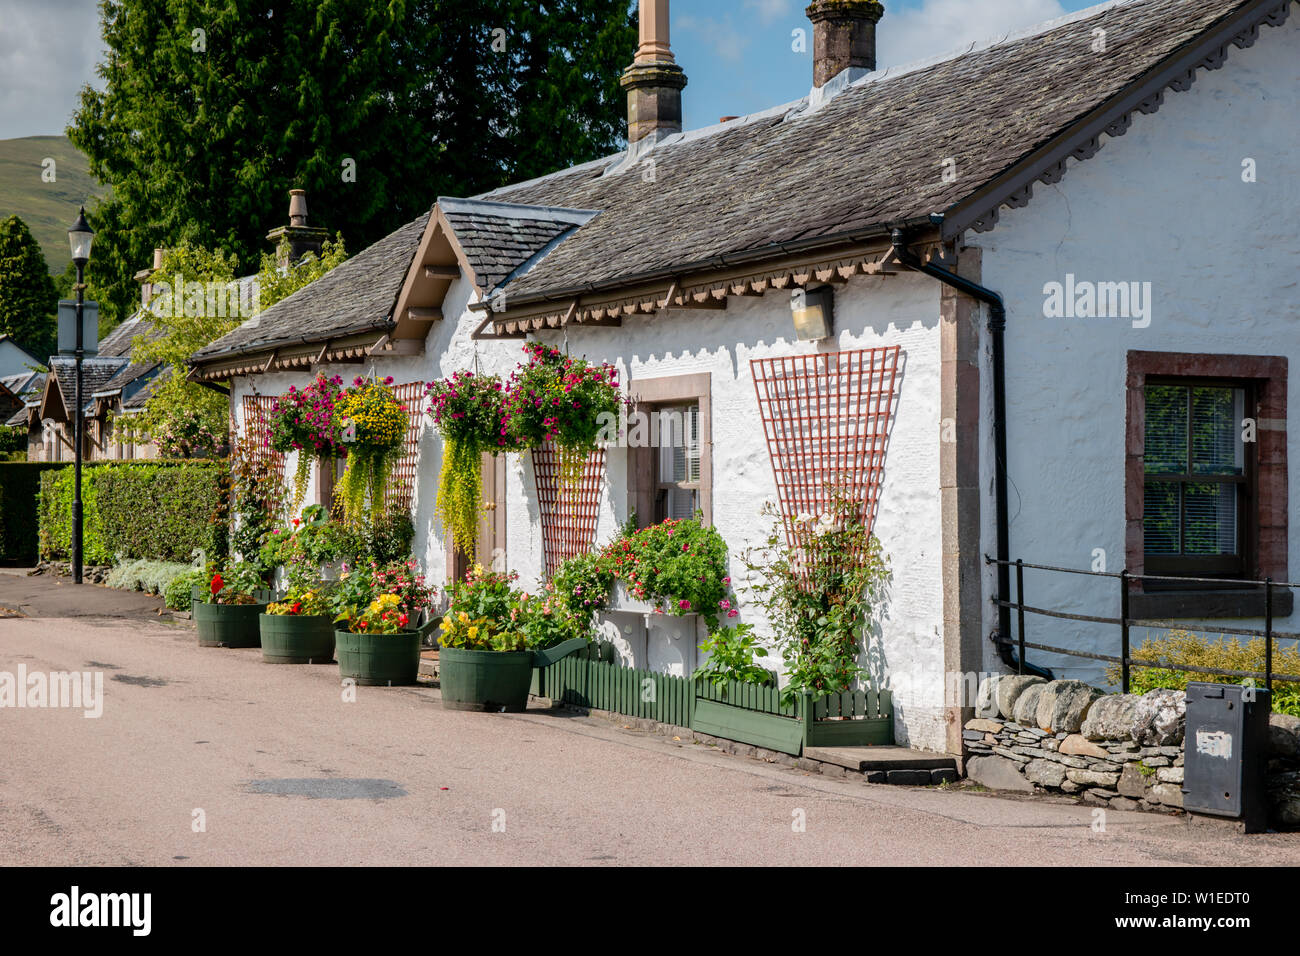 A beautiful traditional British  whitewash cottage decorated with flowers and hanging baskets on a sunny day - Stock Image